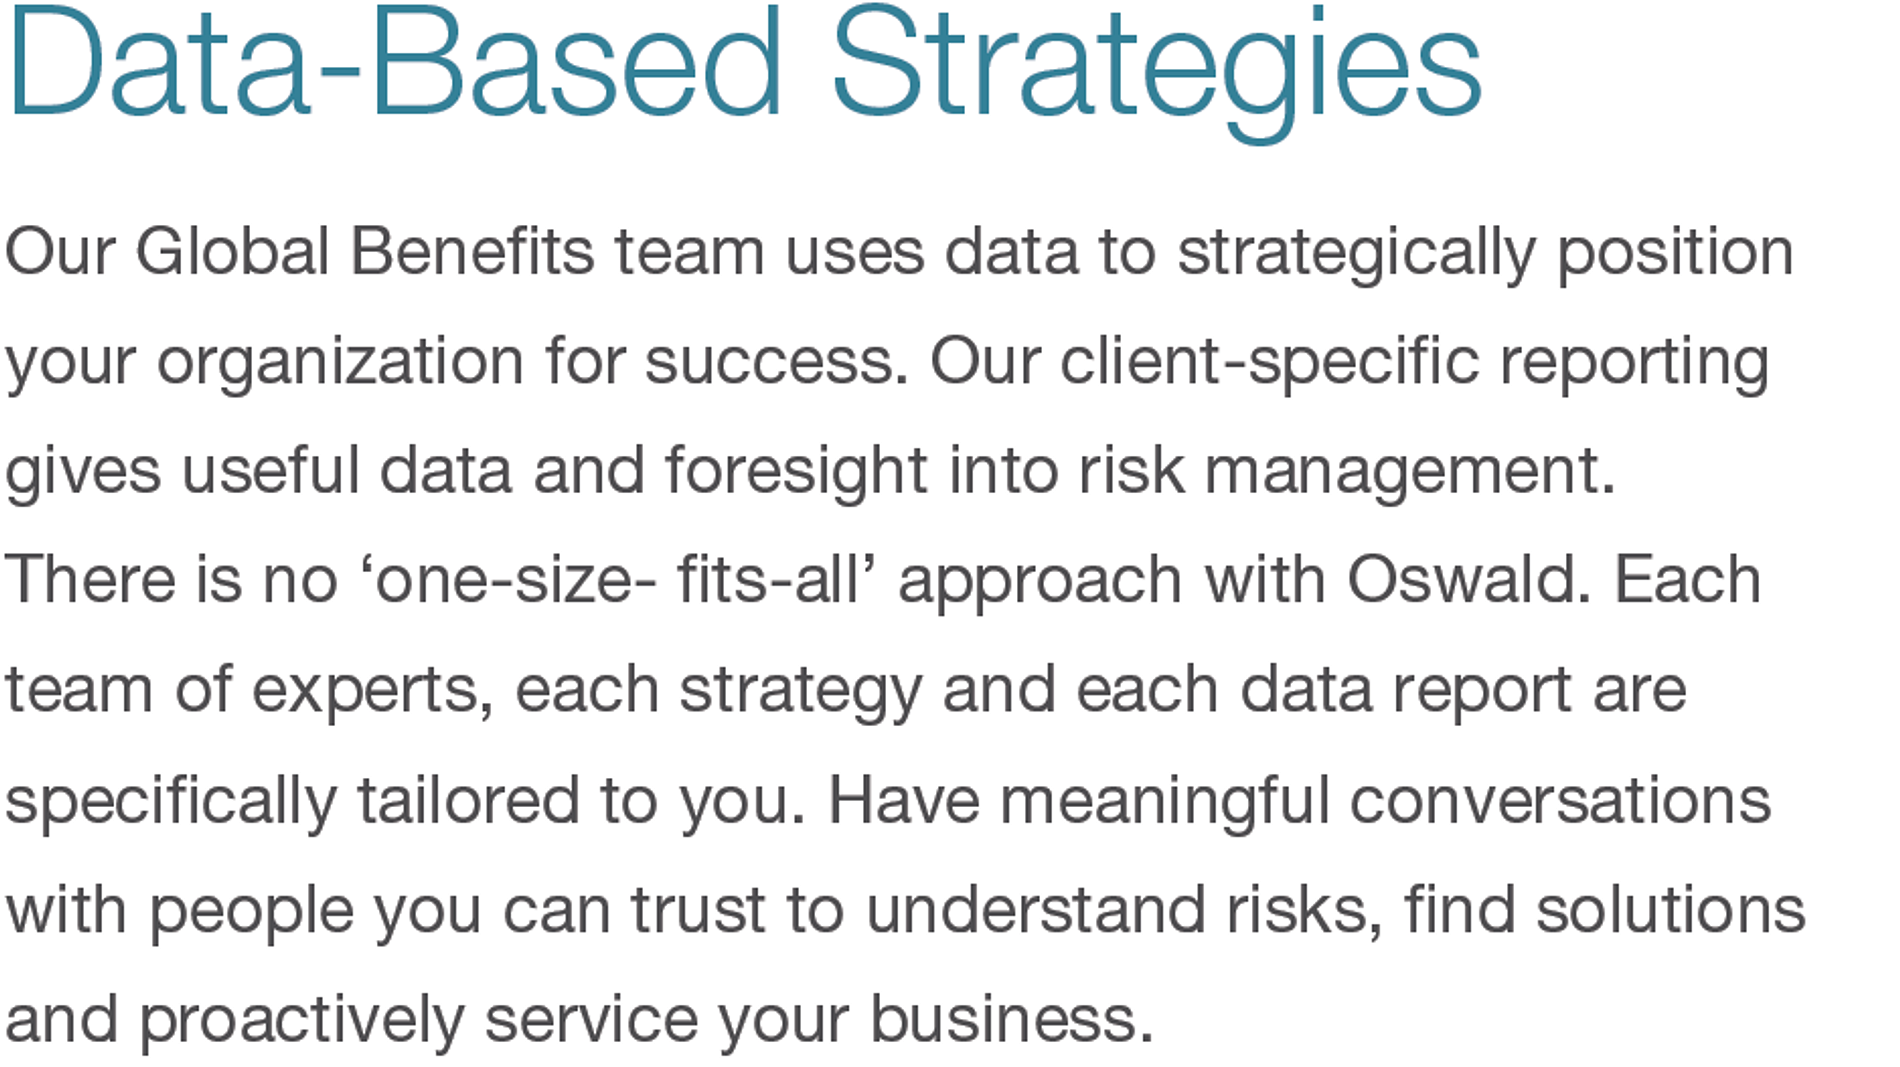 Data-Based Strategies. Our Global Benefits team uses data to strategically position your organization for success. Our client-specific reporting gives useful data and foresight into risk management. There is no 'one-size- fits-all' approach with Oswald. Each team of experts, each strategy and each data report are specifically tailored to you. Have meaningful conversations with people you can trust to understand risks, find solutions and proactively service your business.